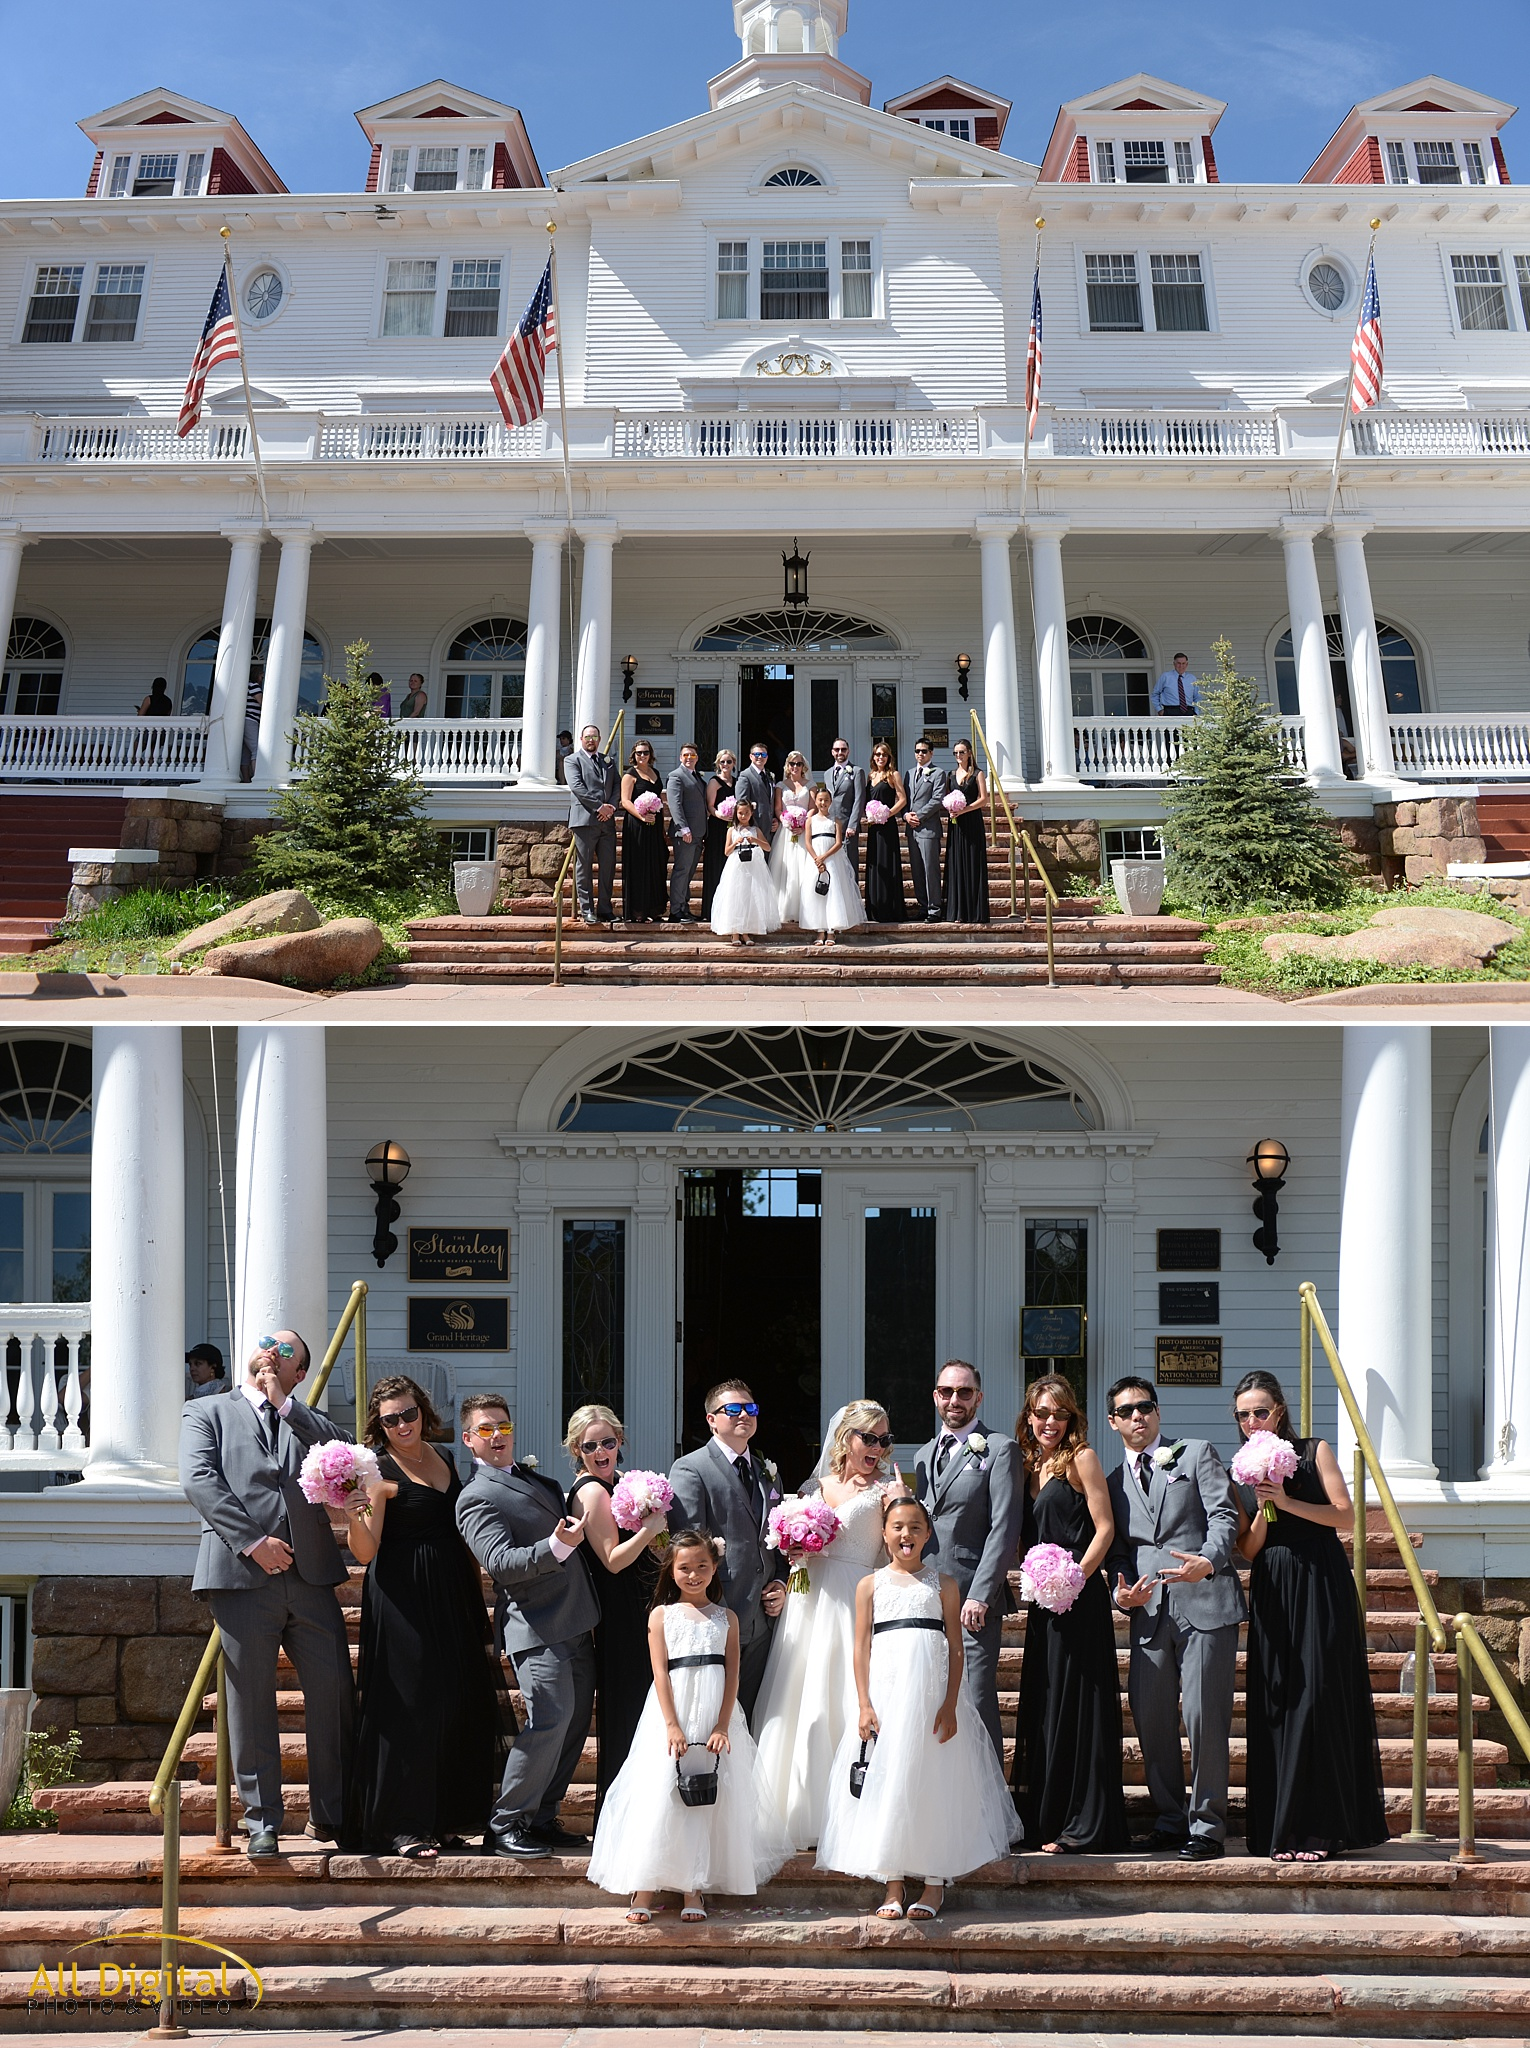 Bridal Party Photos at the Stanley Hotel in Estes Park, Colorado